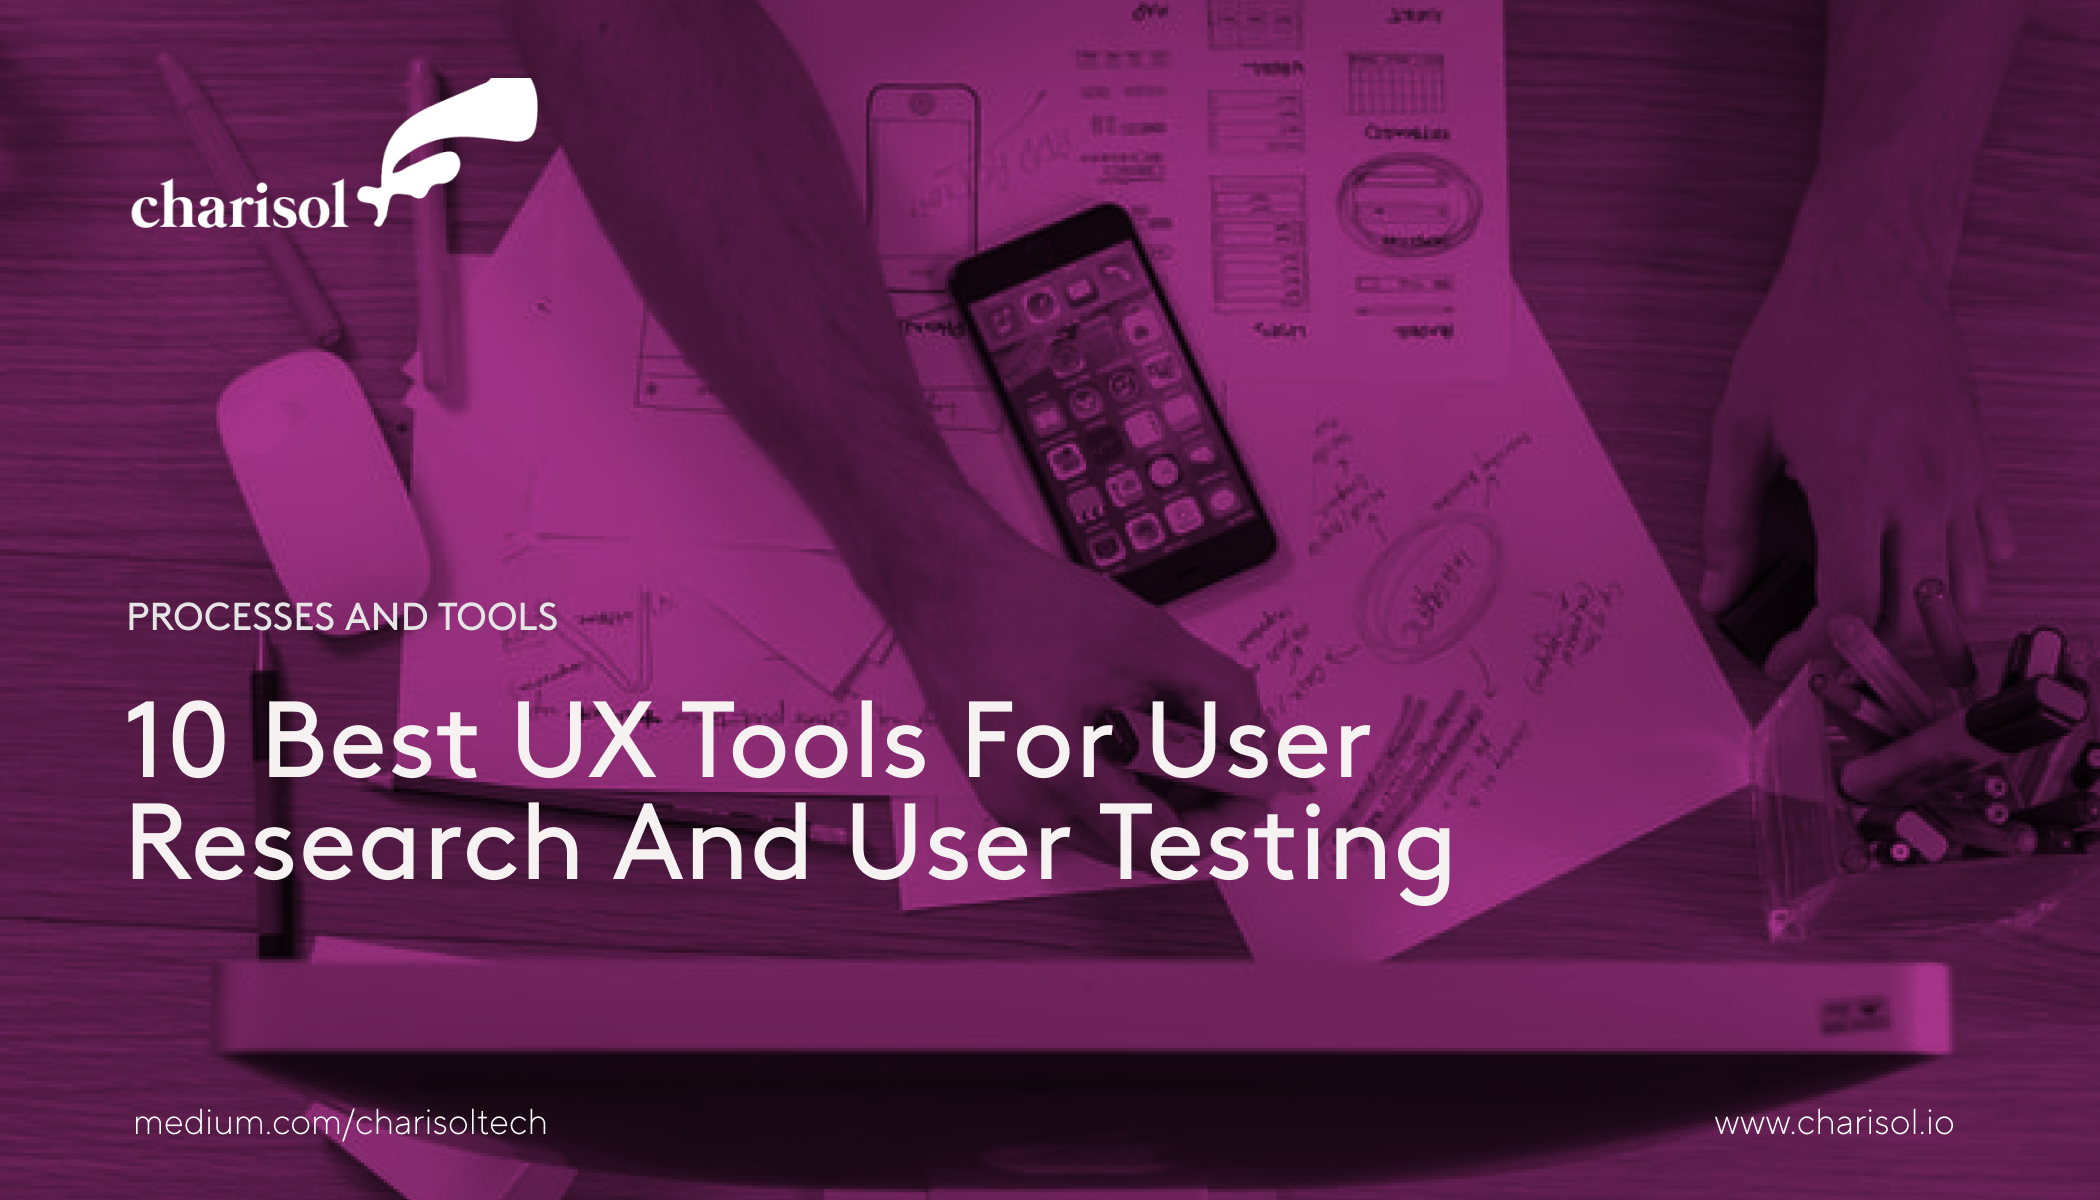 10 Best UX Tools For User Research And User Testing.